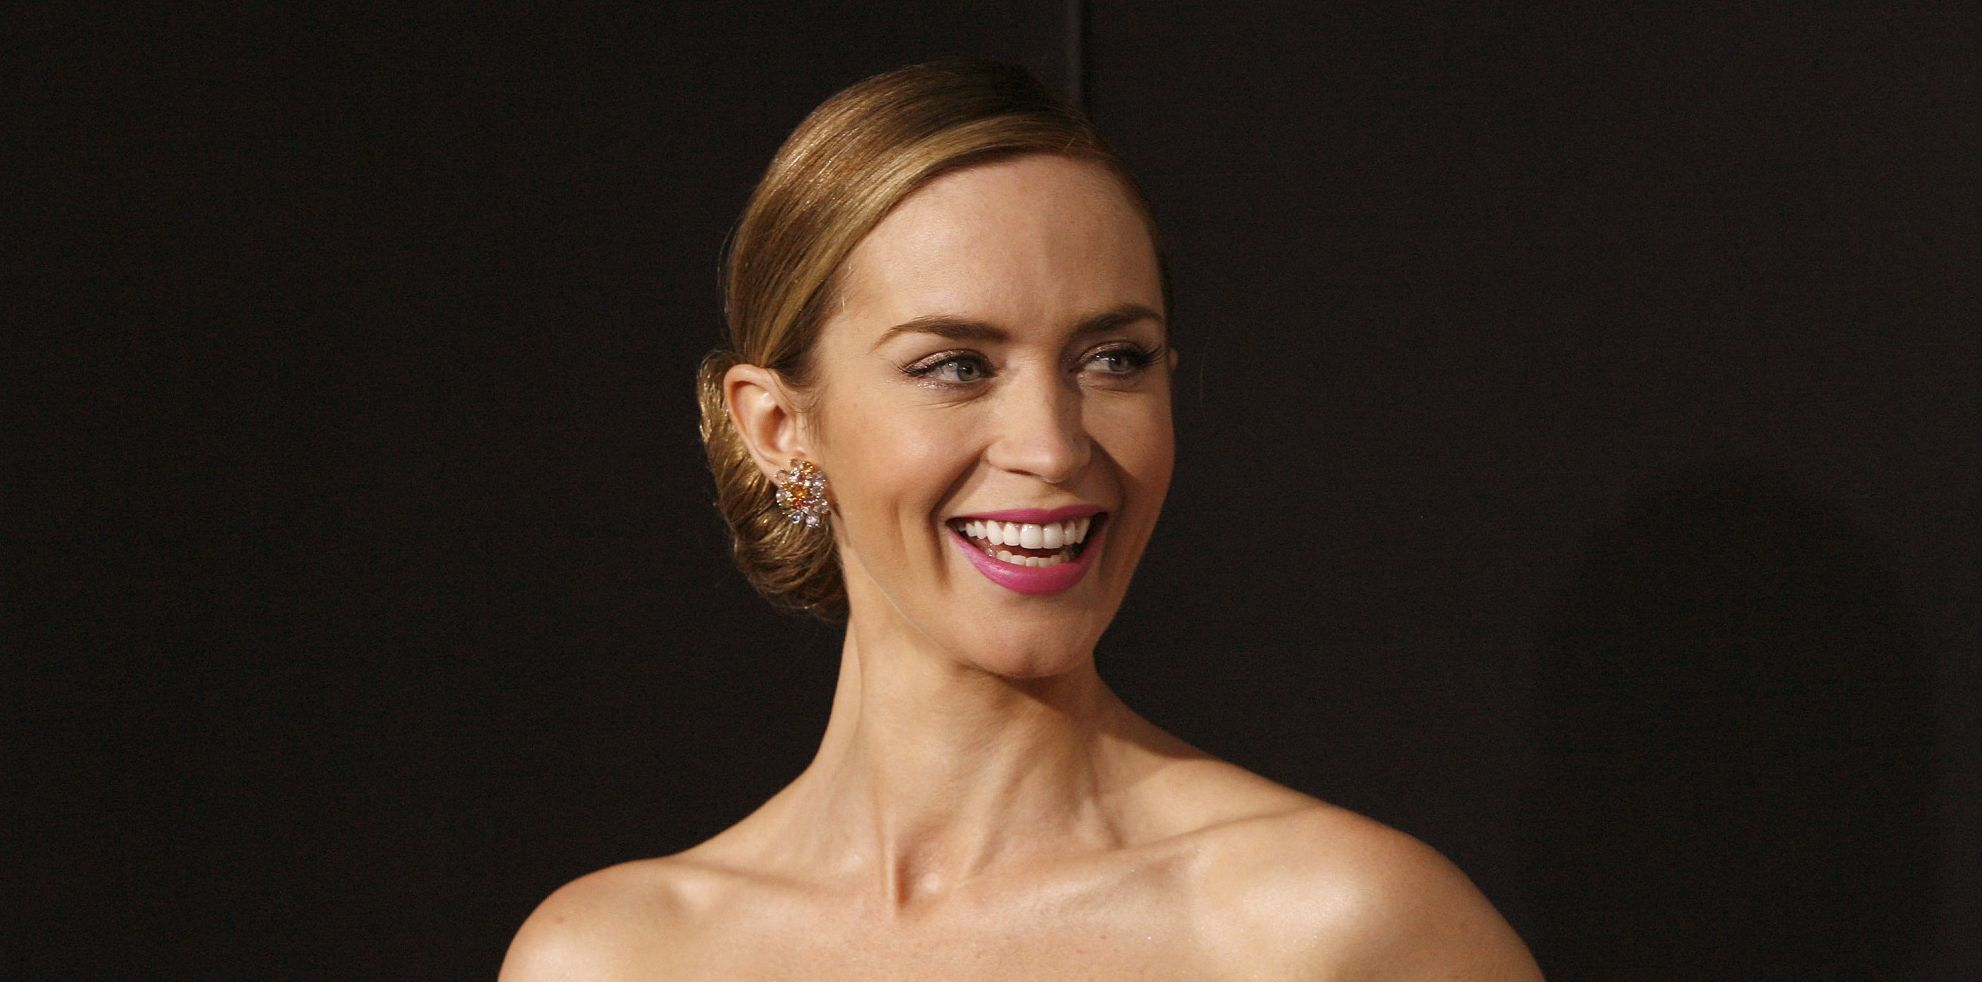 Emily Blunt to Star in The Girl on the Train